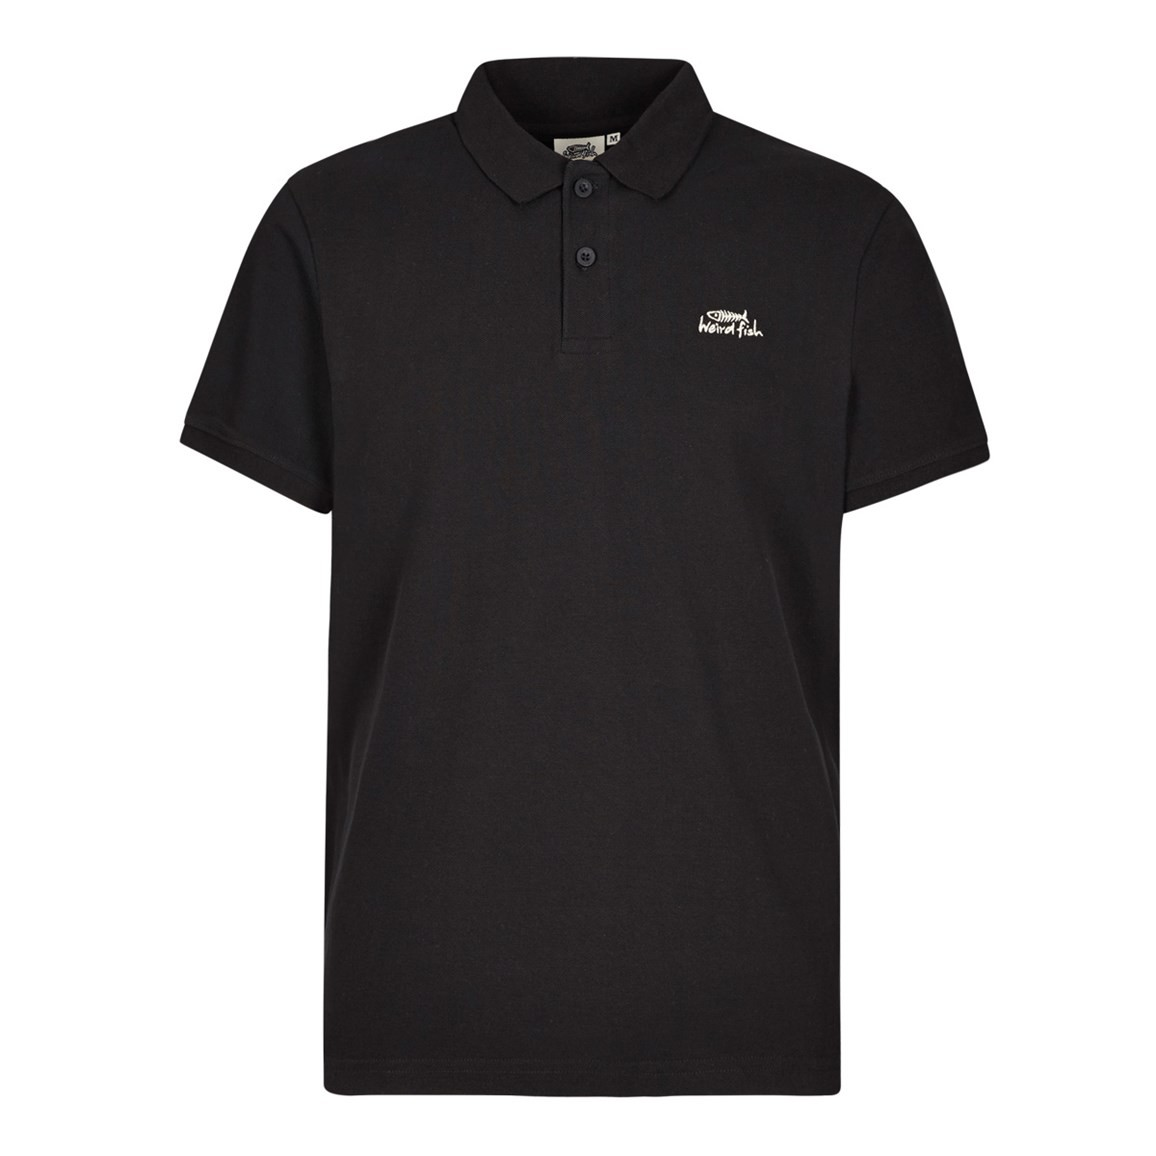 Saltash Rib Collar Pique Polo Shirt Black